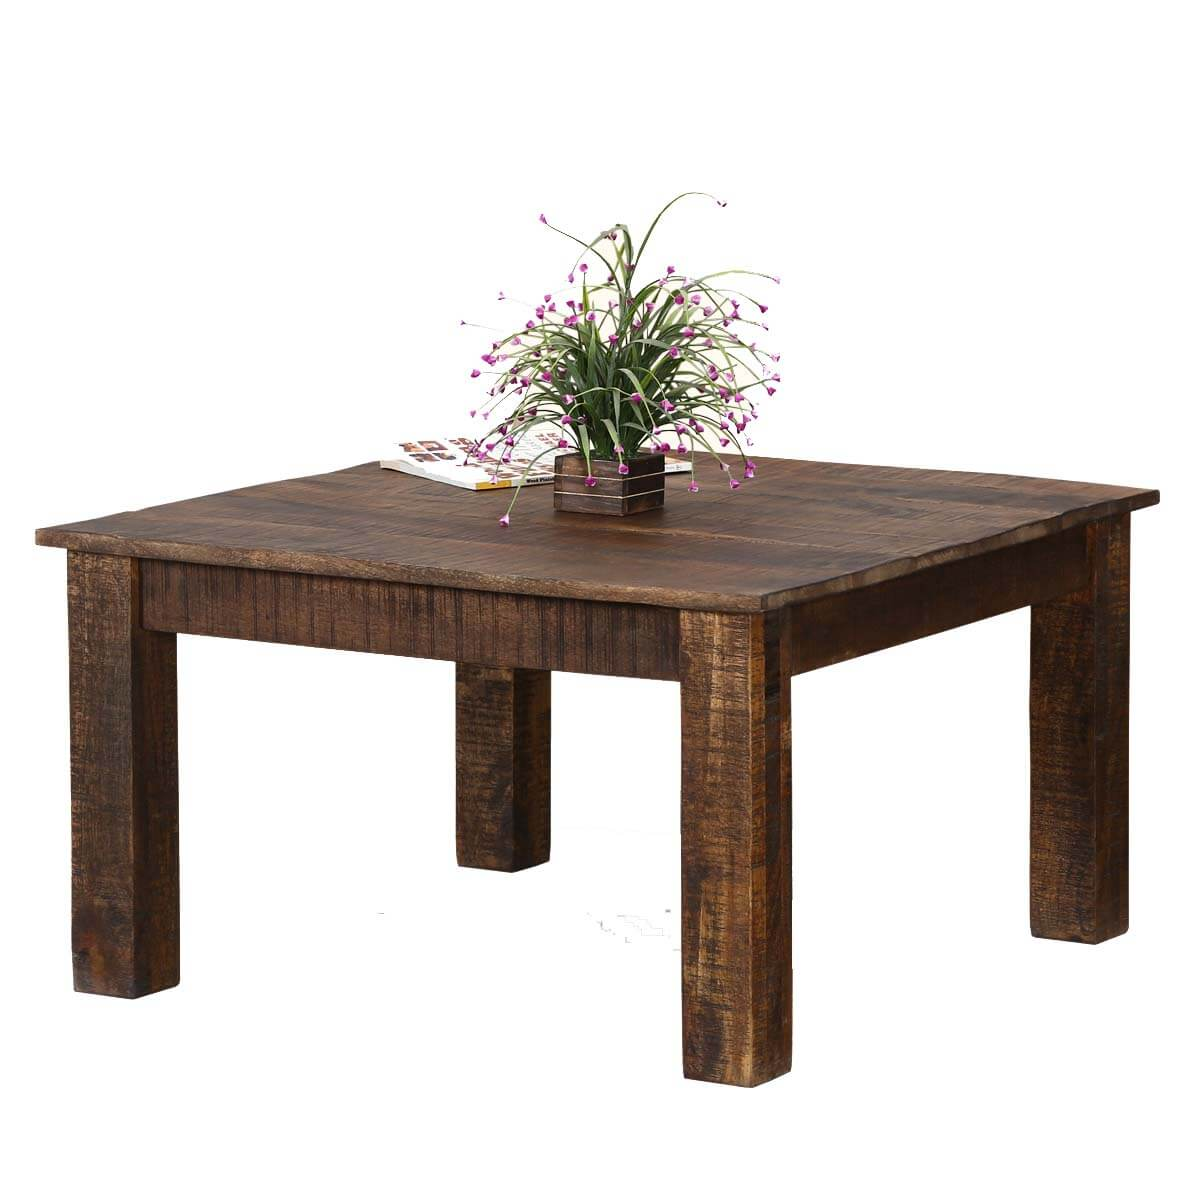 Rustic real solid mango wood 31 square coffee table for Traditional square rustic coffee table design